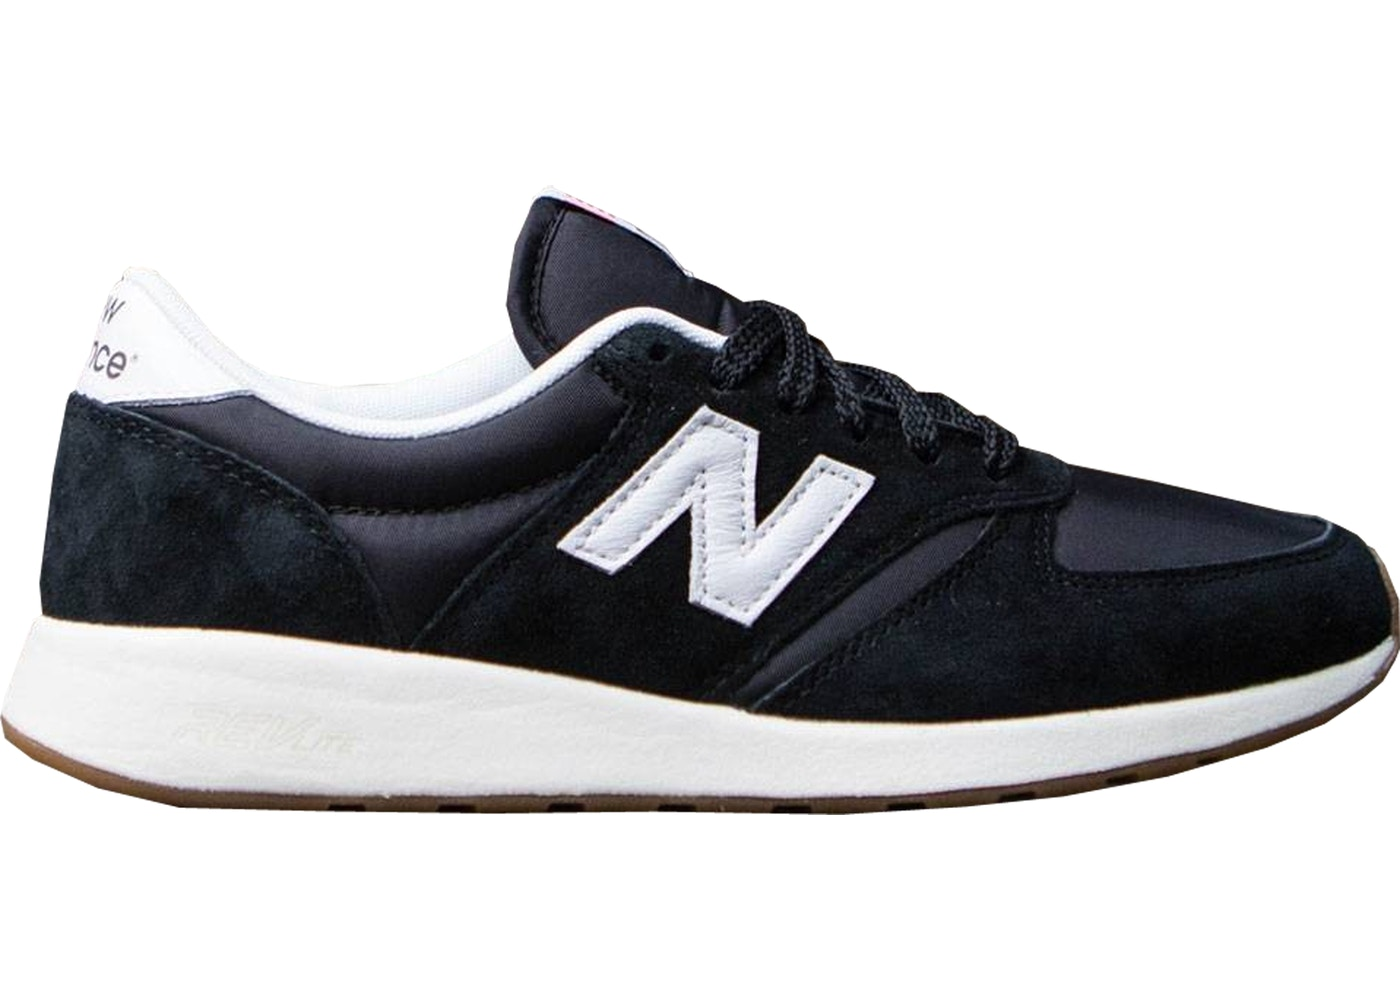 New Balance Size 5 Shoes Lowest Ask